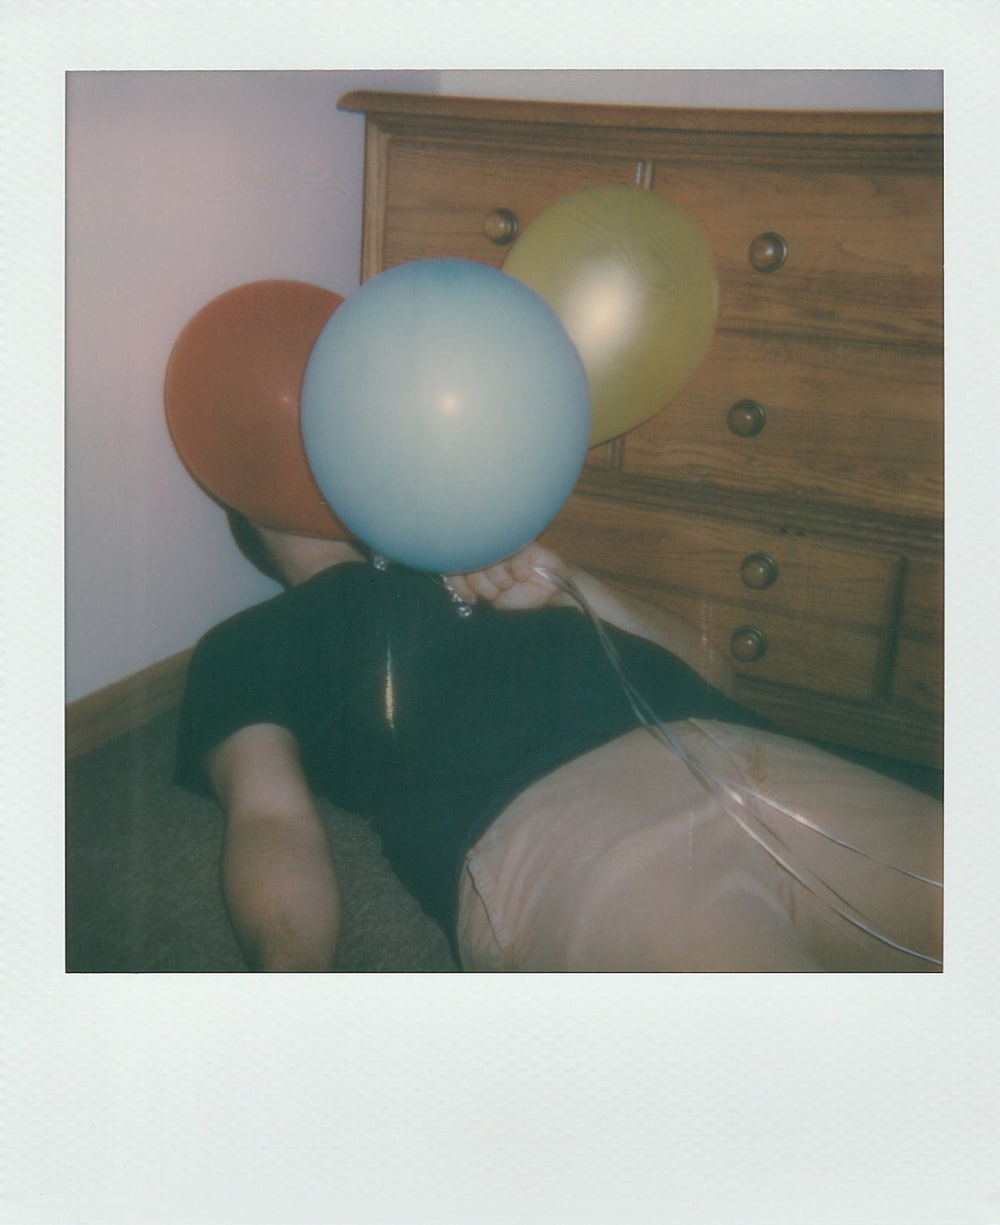 man holding three assorted-color balloons